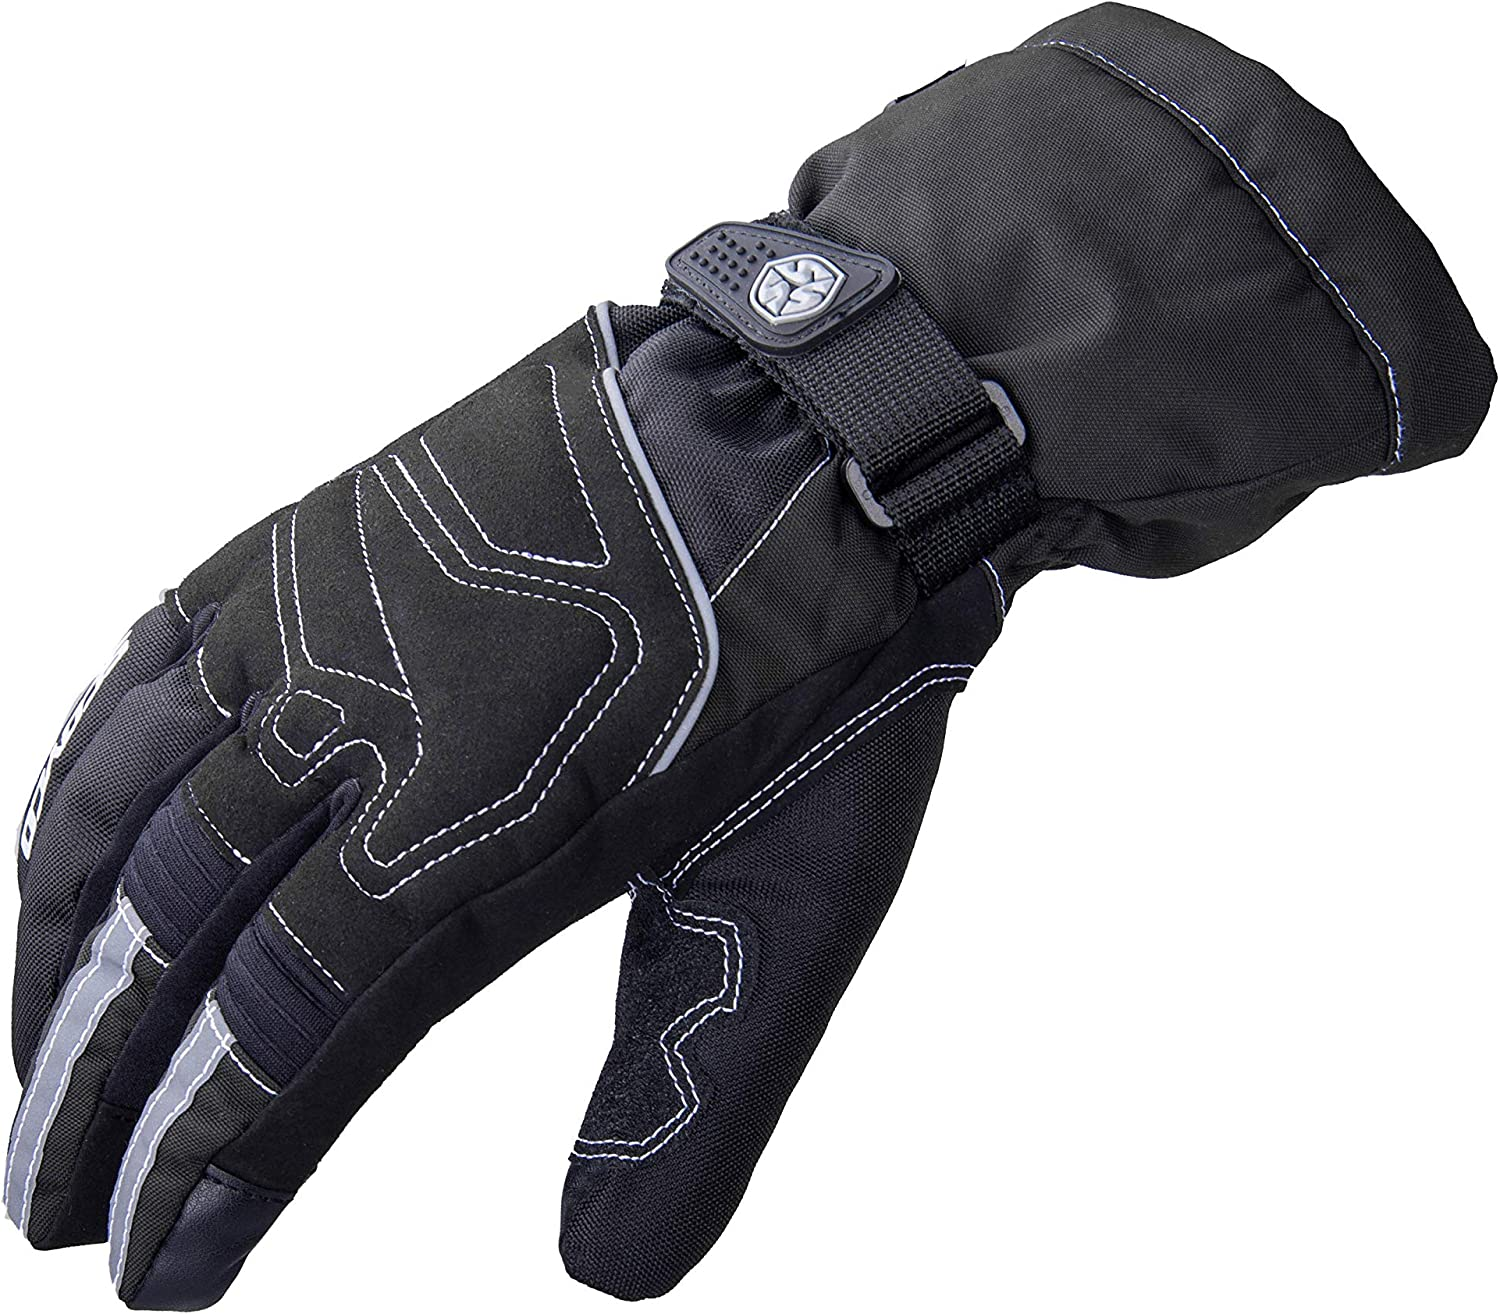 SCOYCO Winter Thermal Motorcycle Gloves for Men and Women Waterproof Touch Screen Warm Motorbike Gloves for Cruiser Touring Commuter Adventure Motorcycle Riding Cycling Camouflage